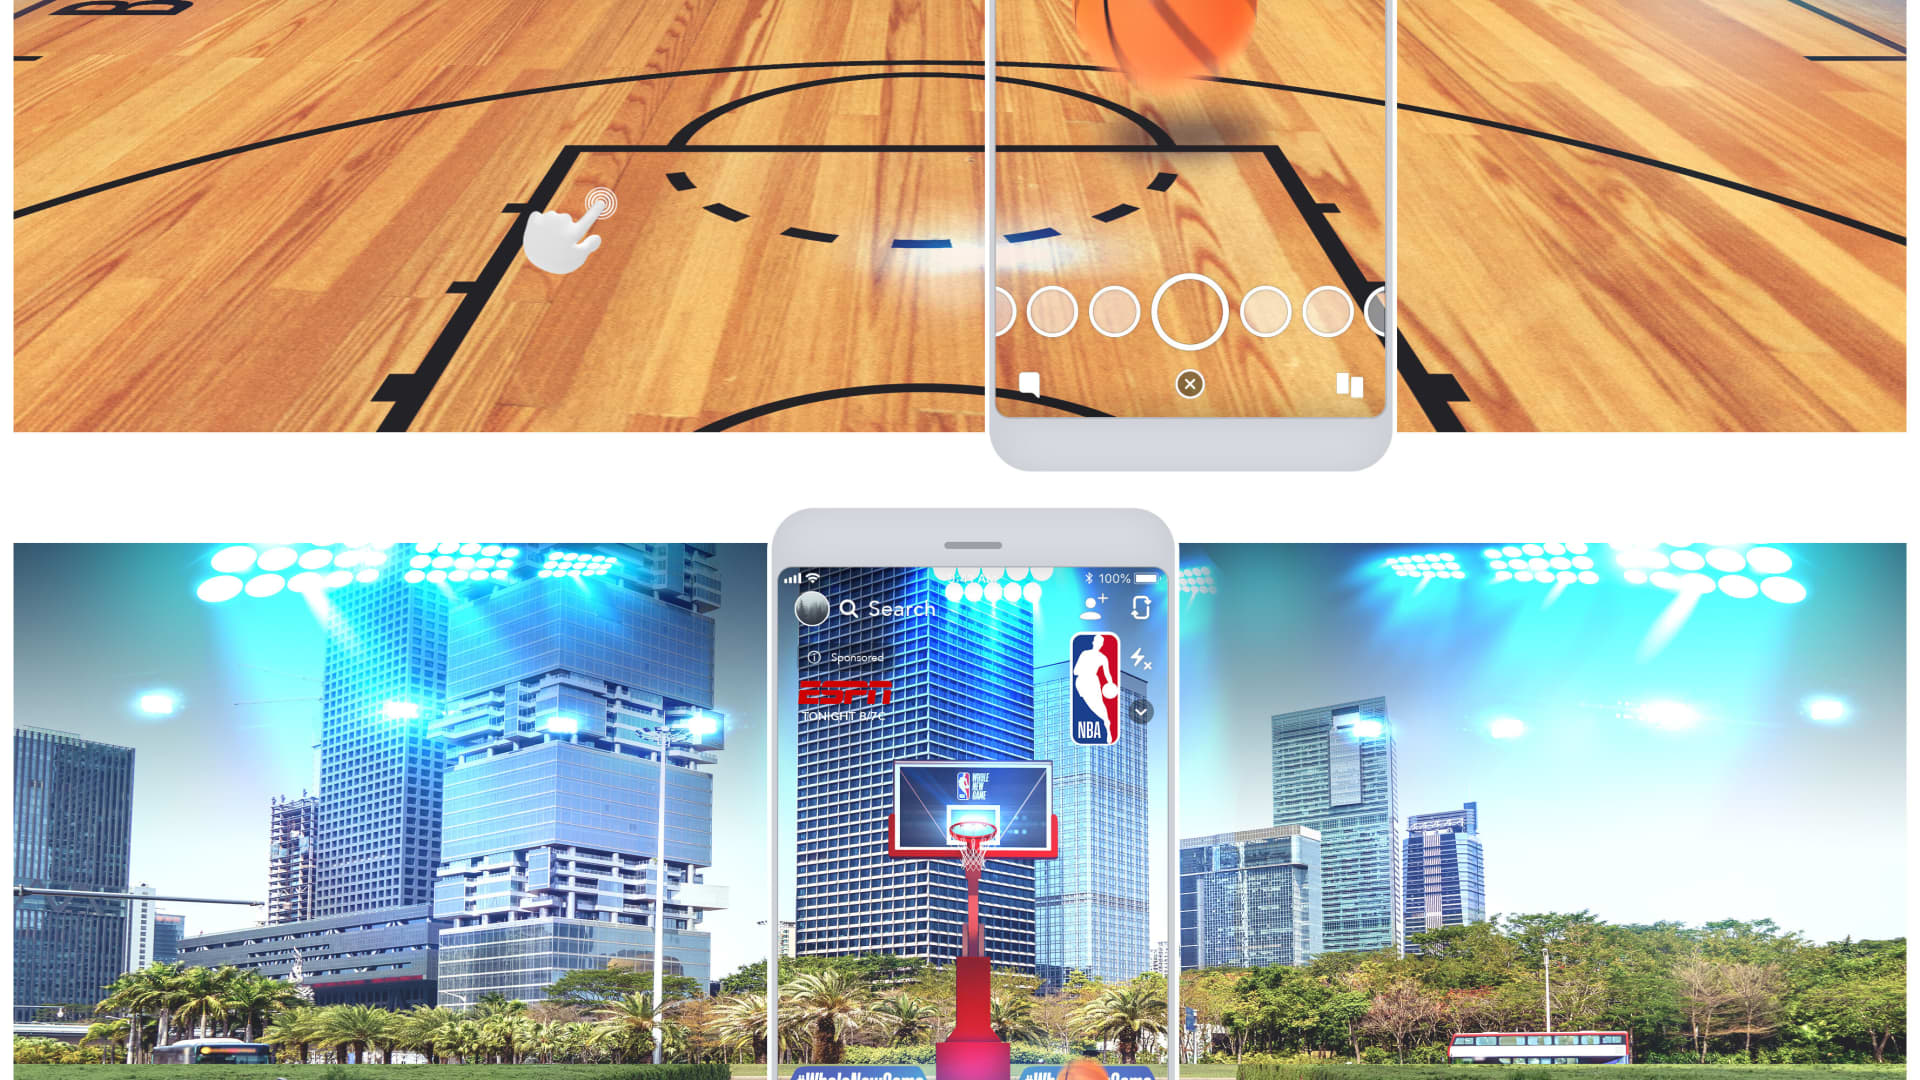 Snapchat partners with the NBA with Snapchat-NBA augmented reality features.